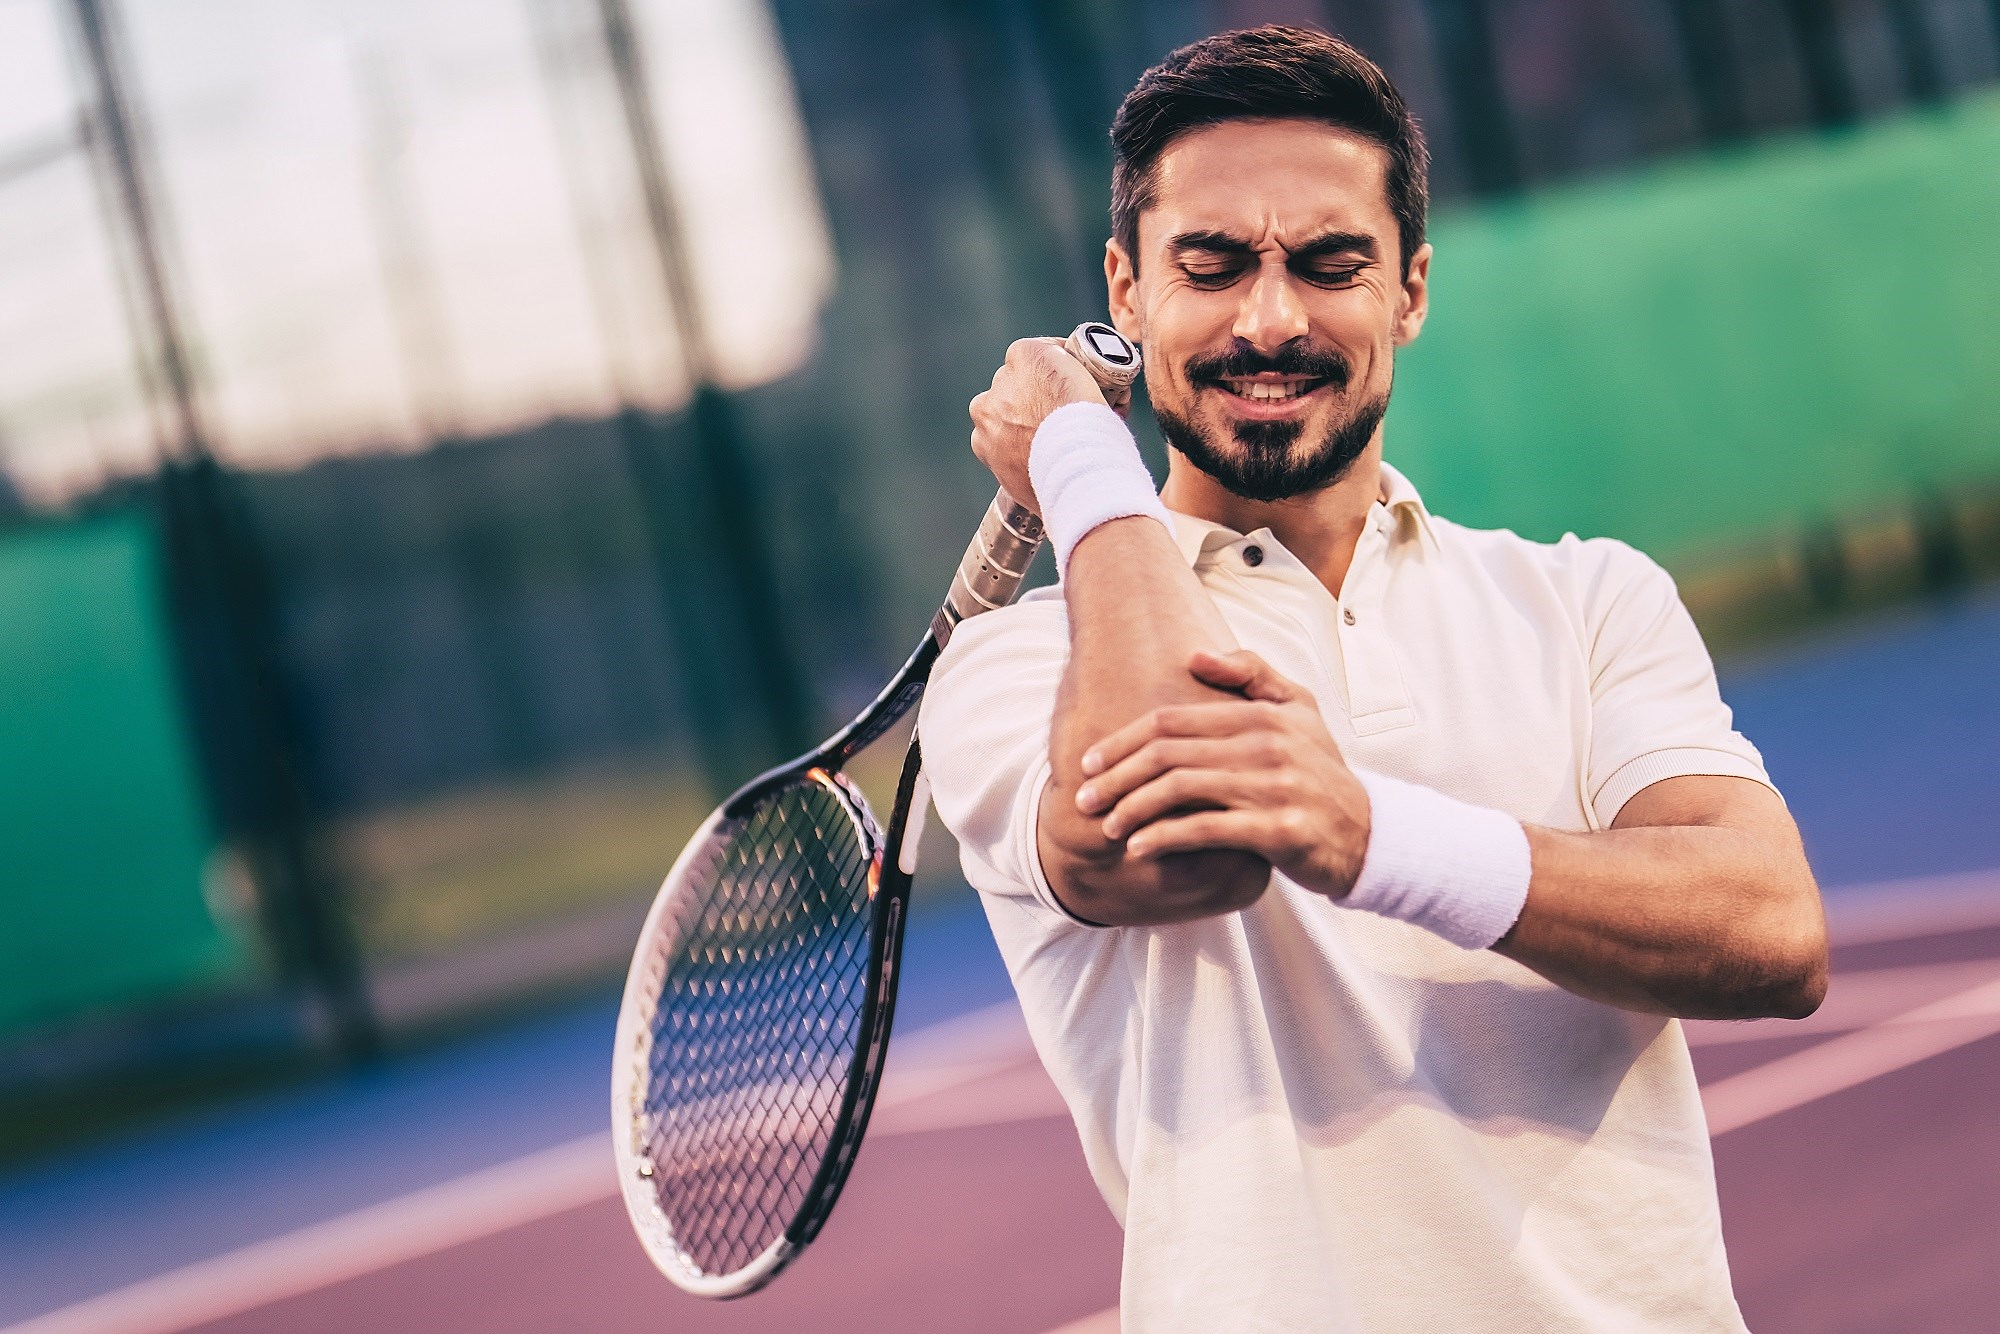 At best, all treatments provide only small pain relief for tennis elbow.